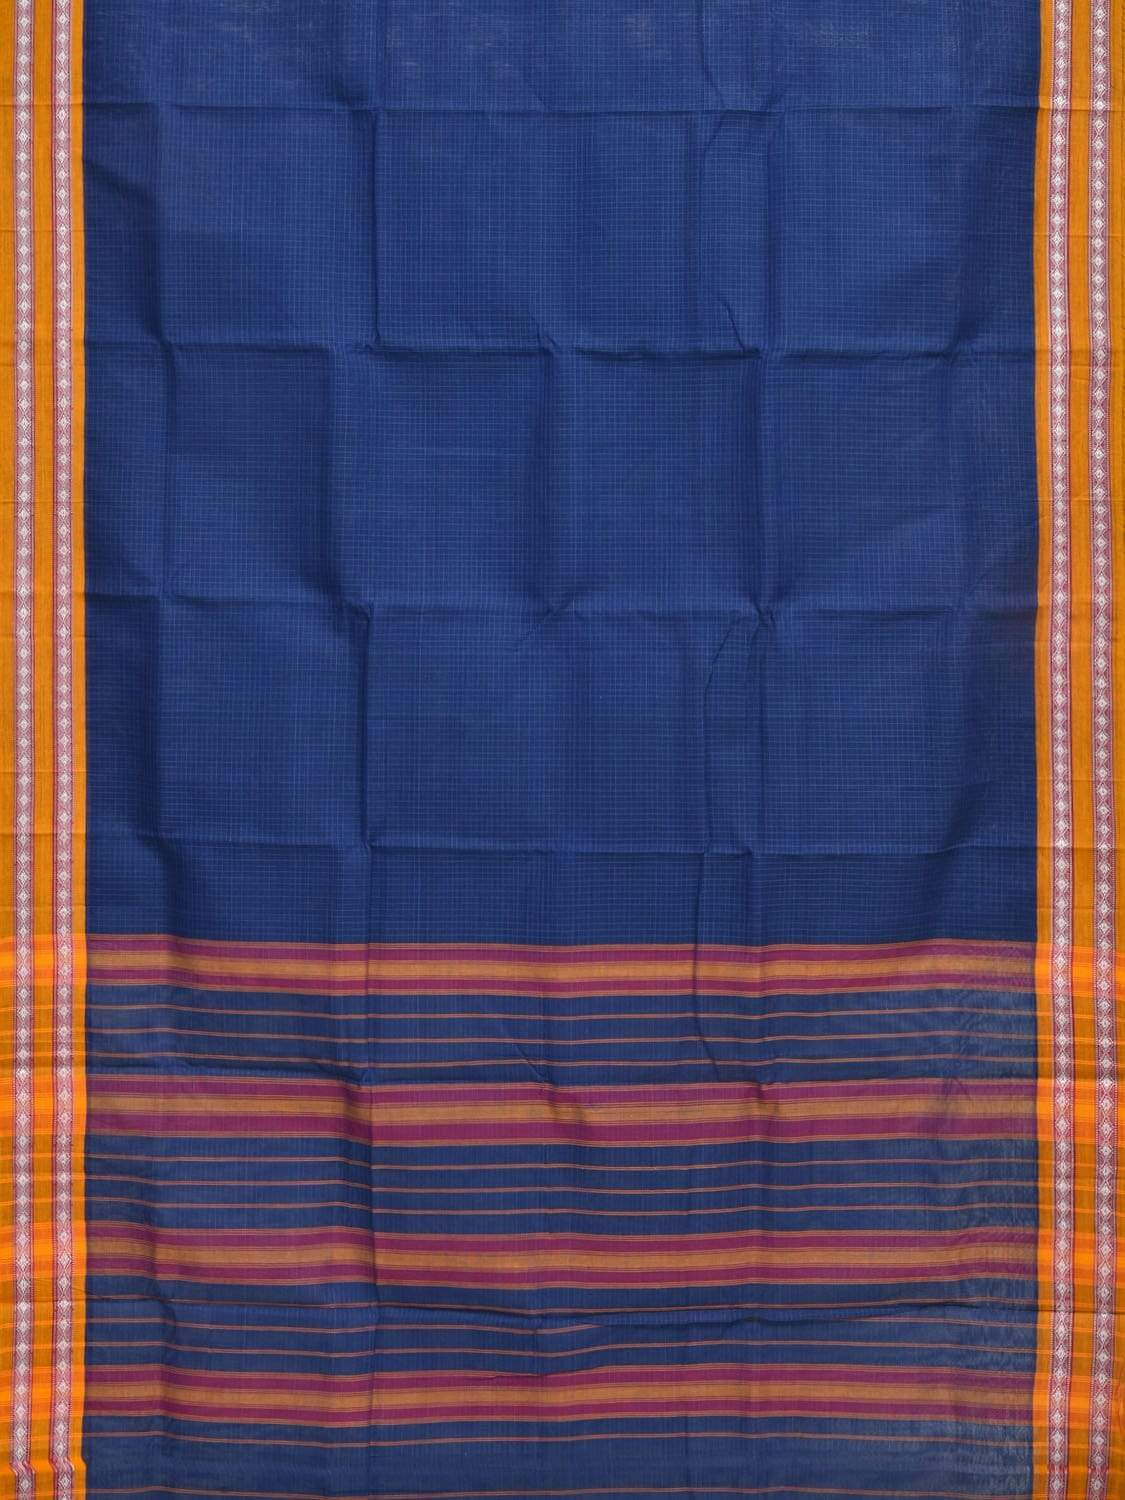 Blue Narayanpet Cotton Handloom Saree with Checks and Border Design No Blouse np0248